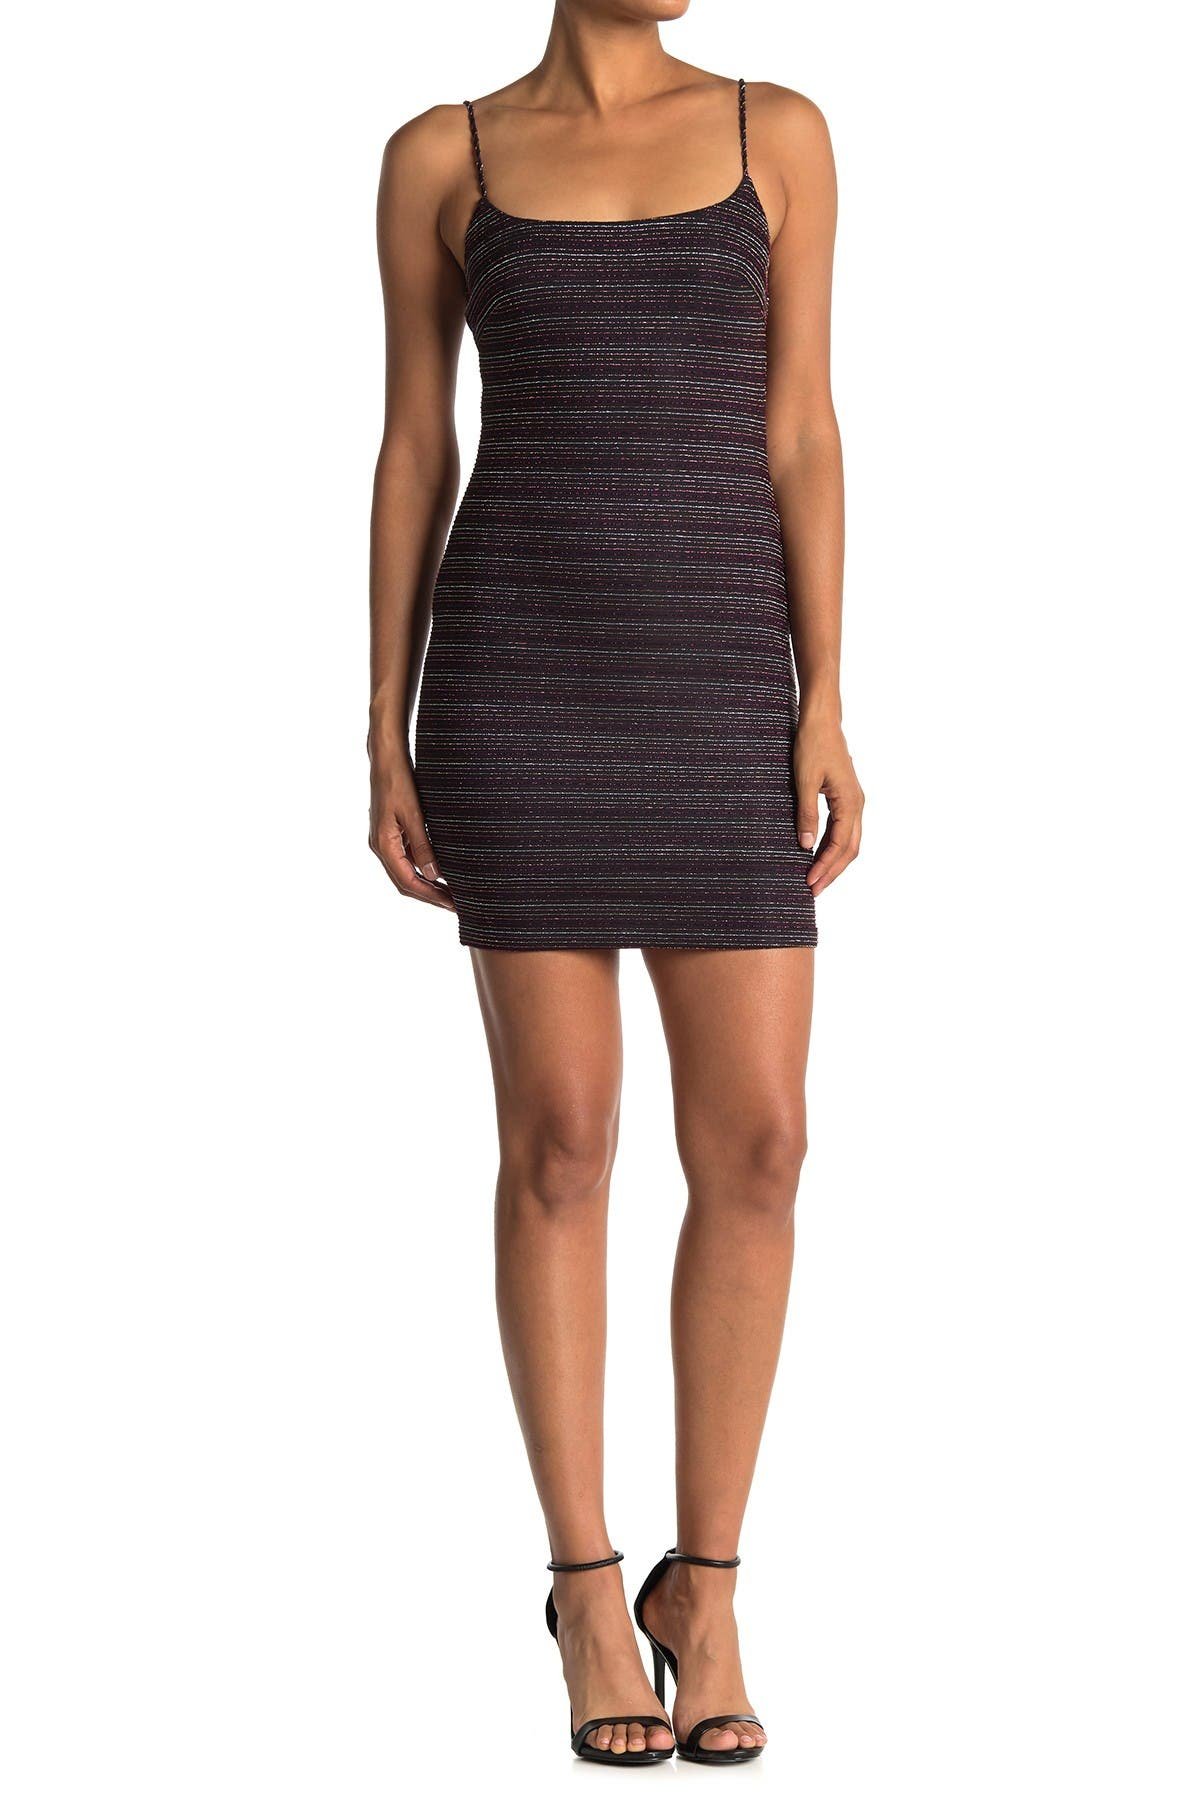 Image of Lush Metallic Stripe Bodycon Mini Dress